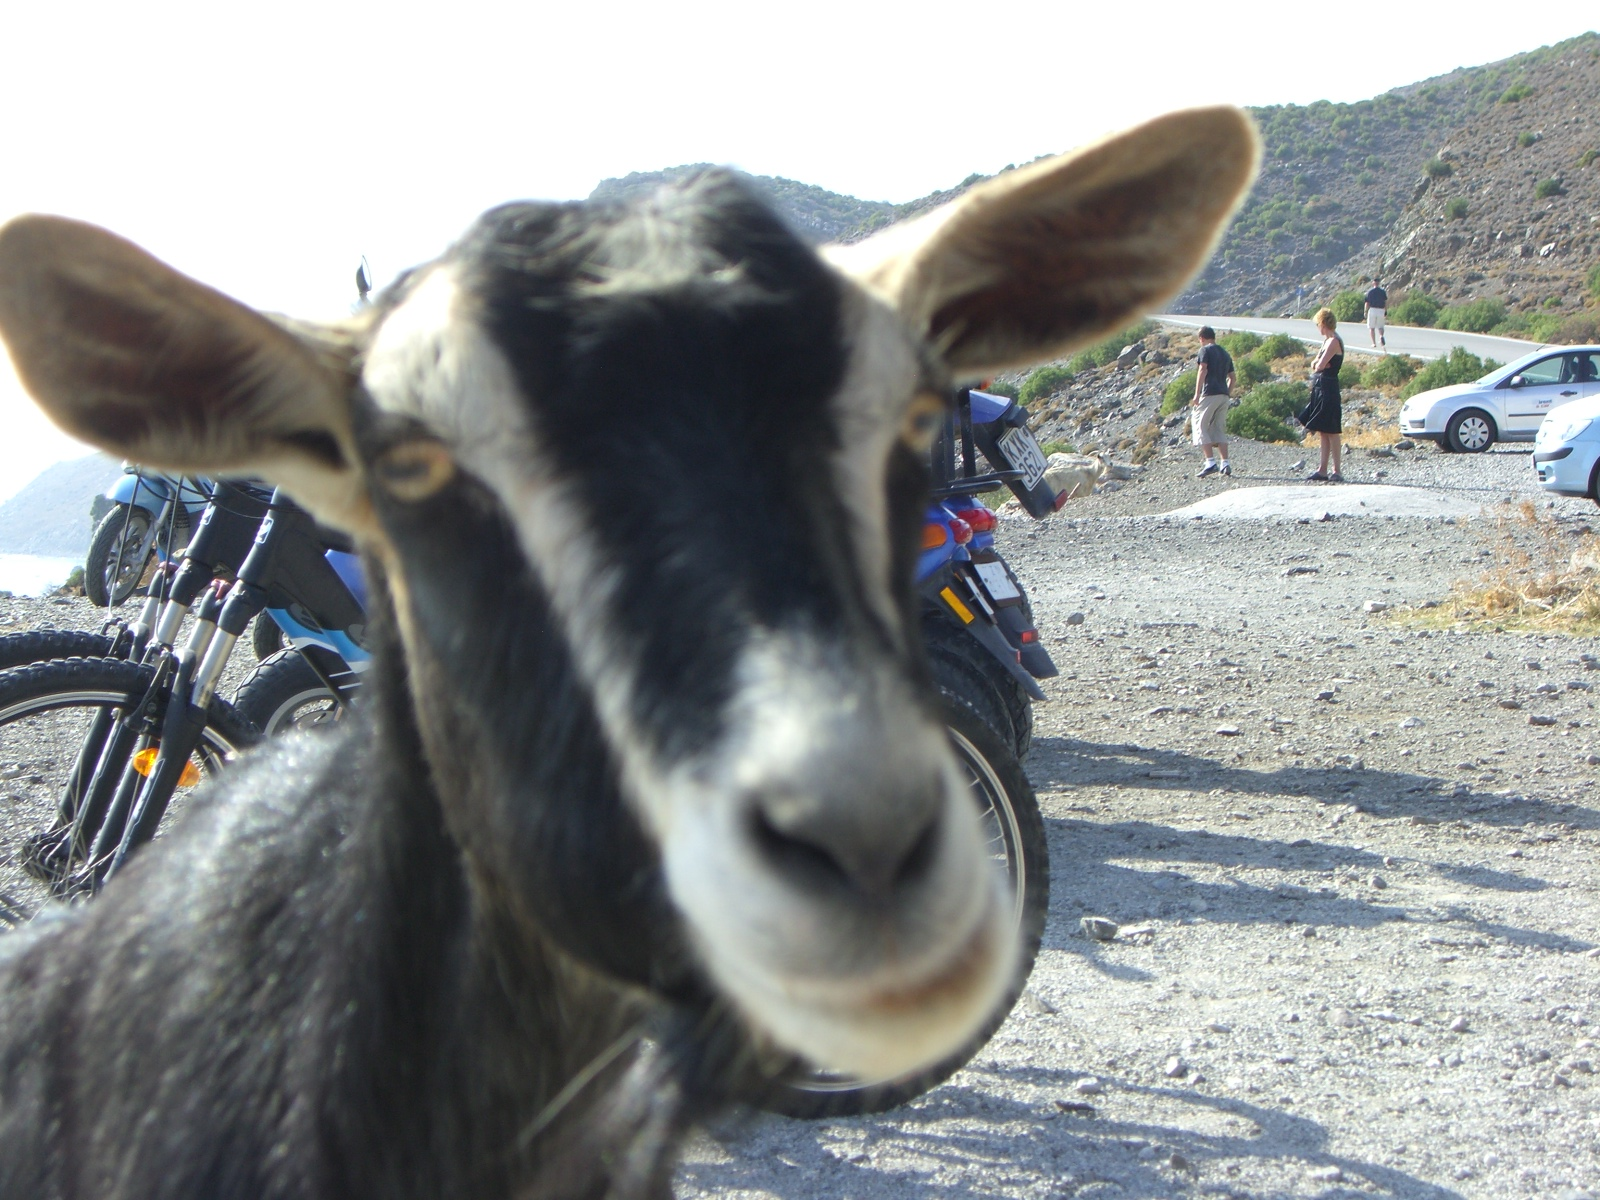 This is one goat who knows how to mug for a camera